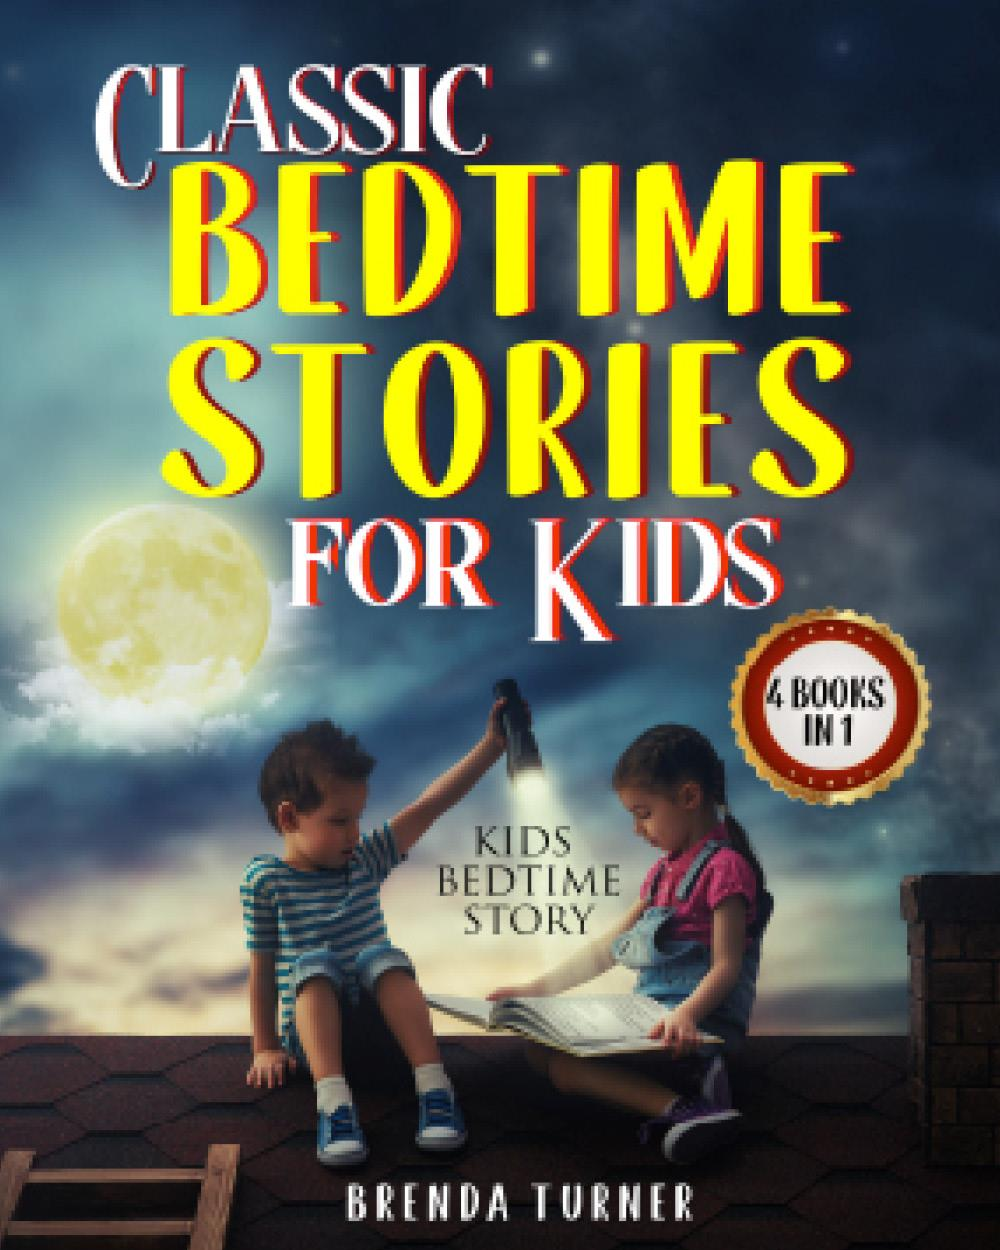 Classic Bedtime Stories for Kids (4 Books in 1)